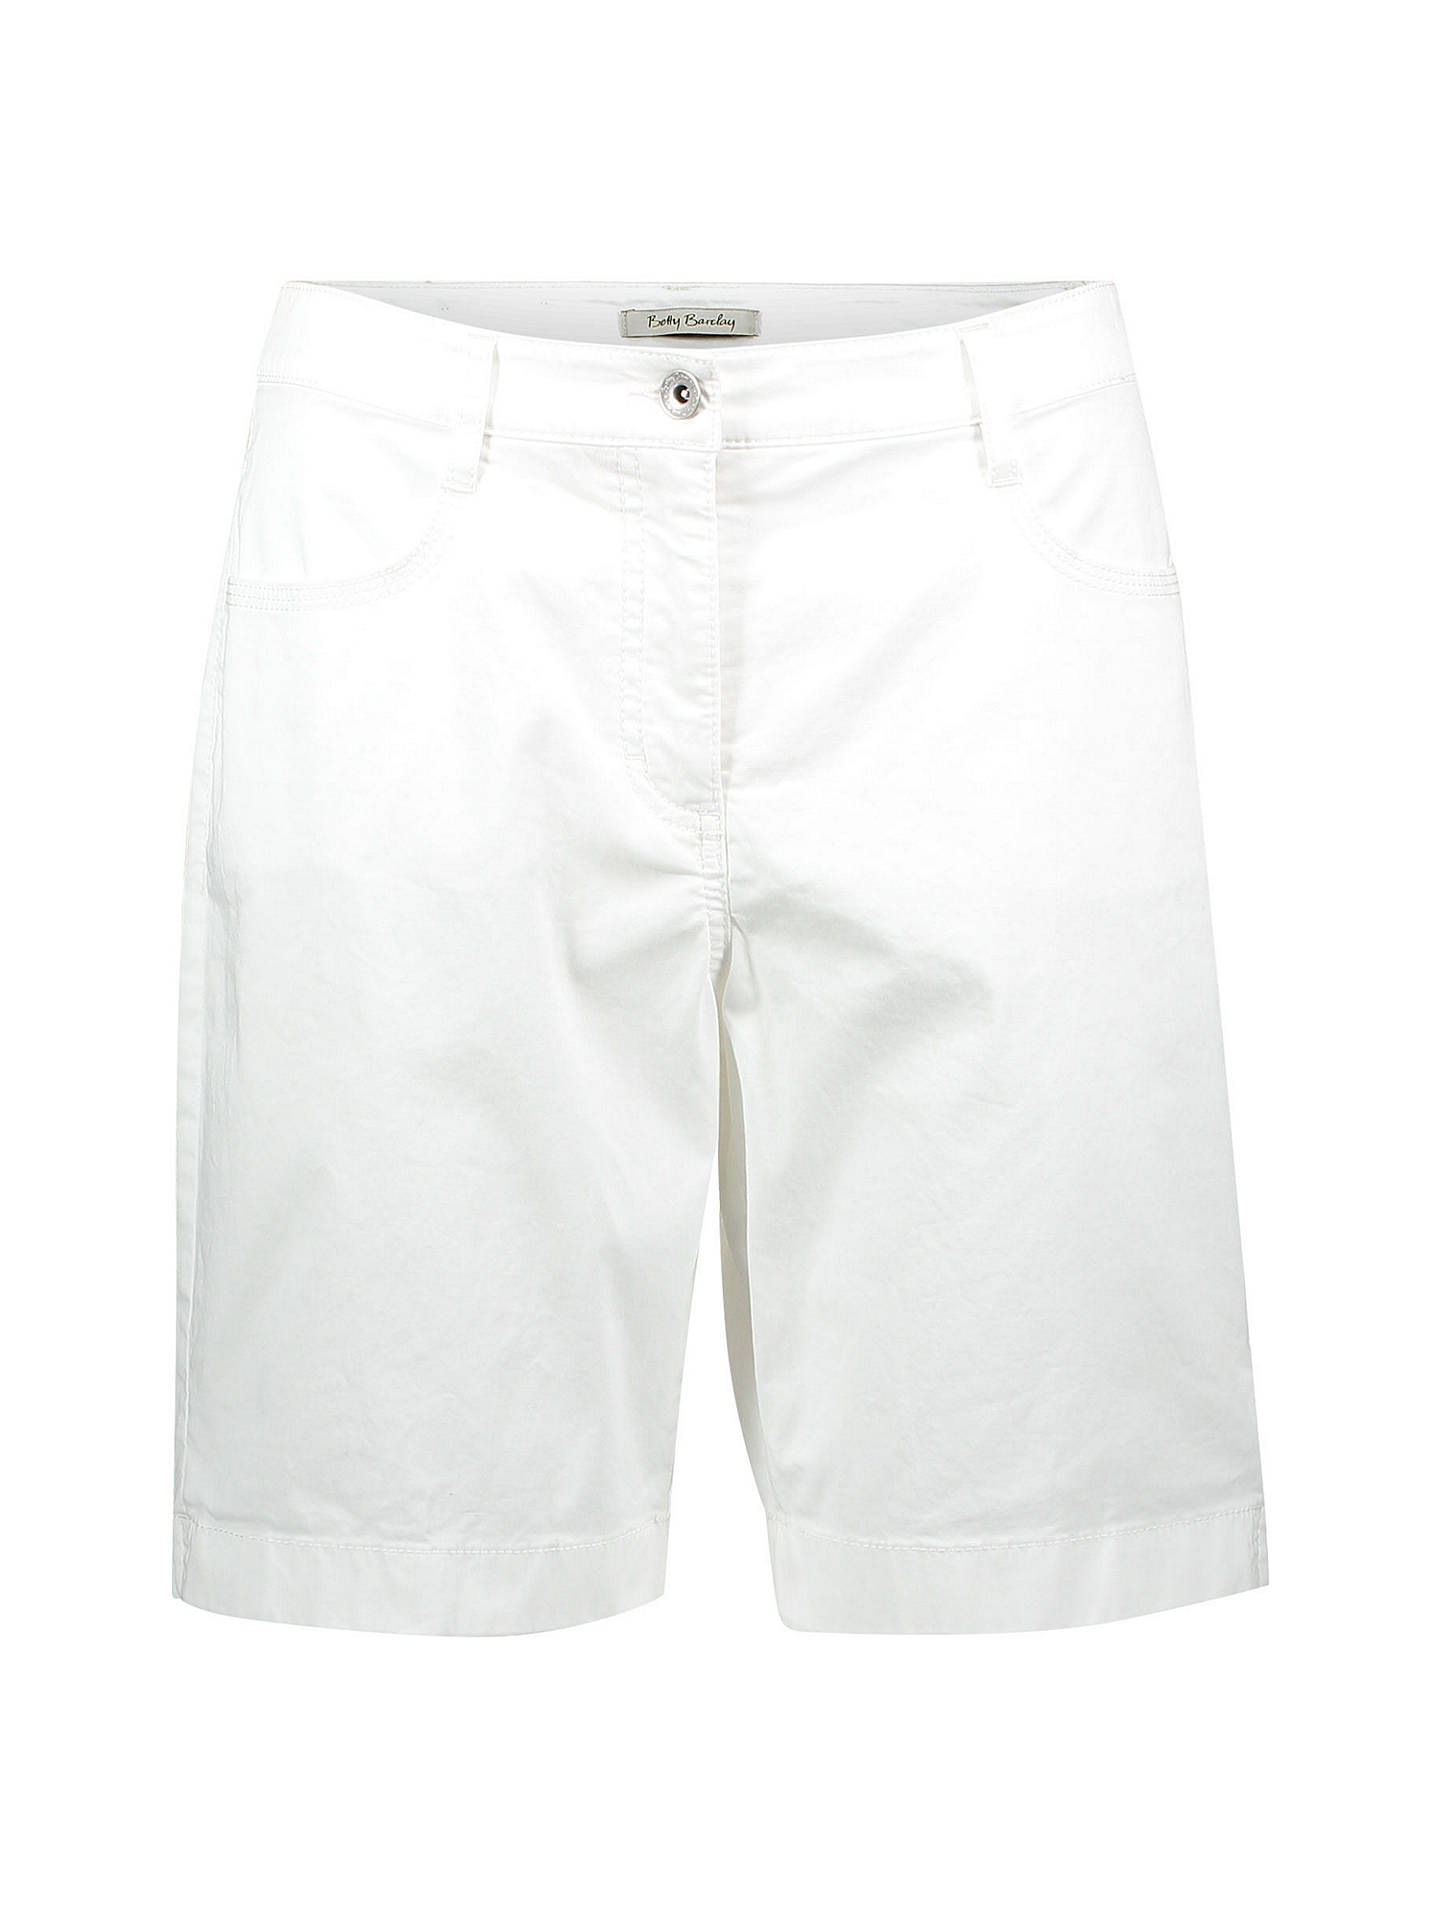 Buy Betty Barclay Cotton Shorts, Bright White, 8 Online at johnlewis.com